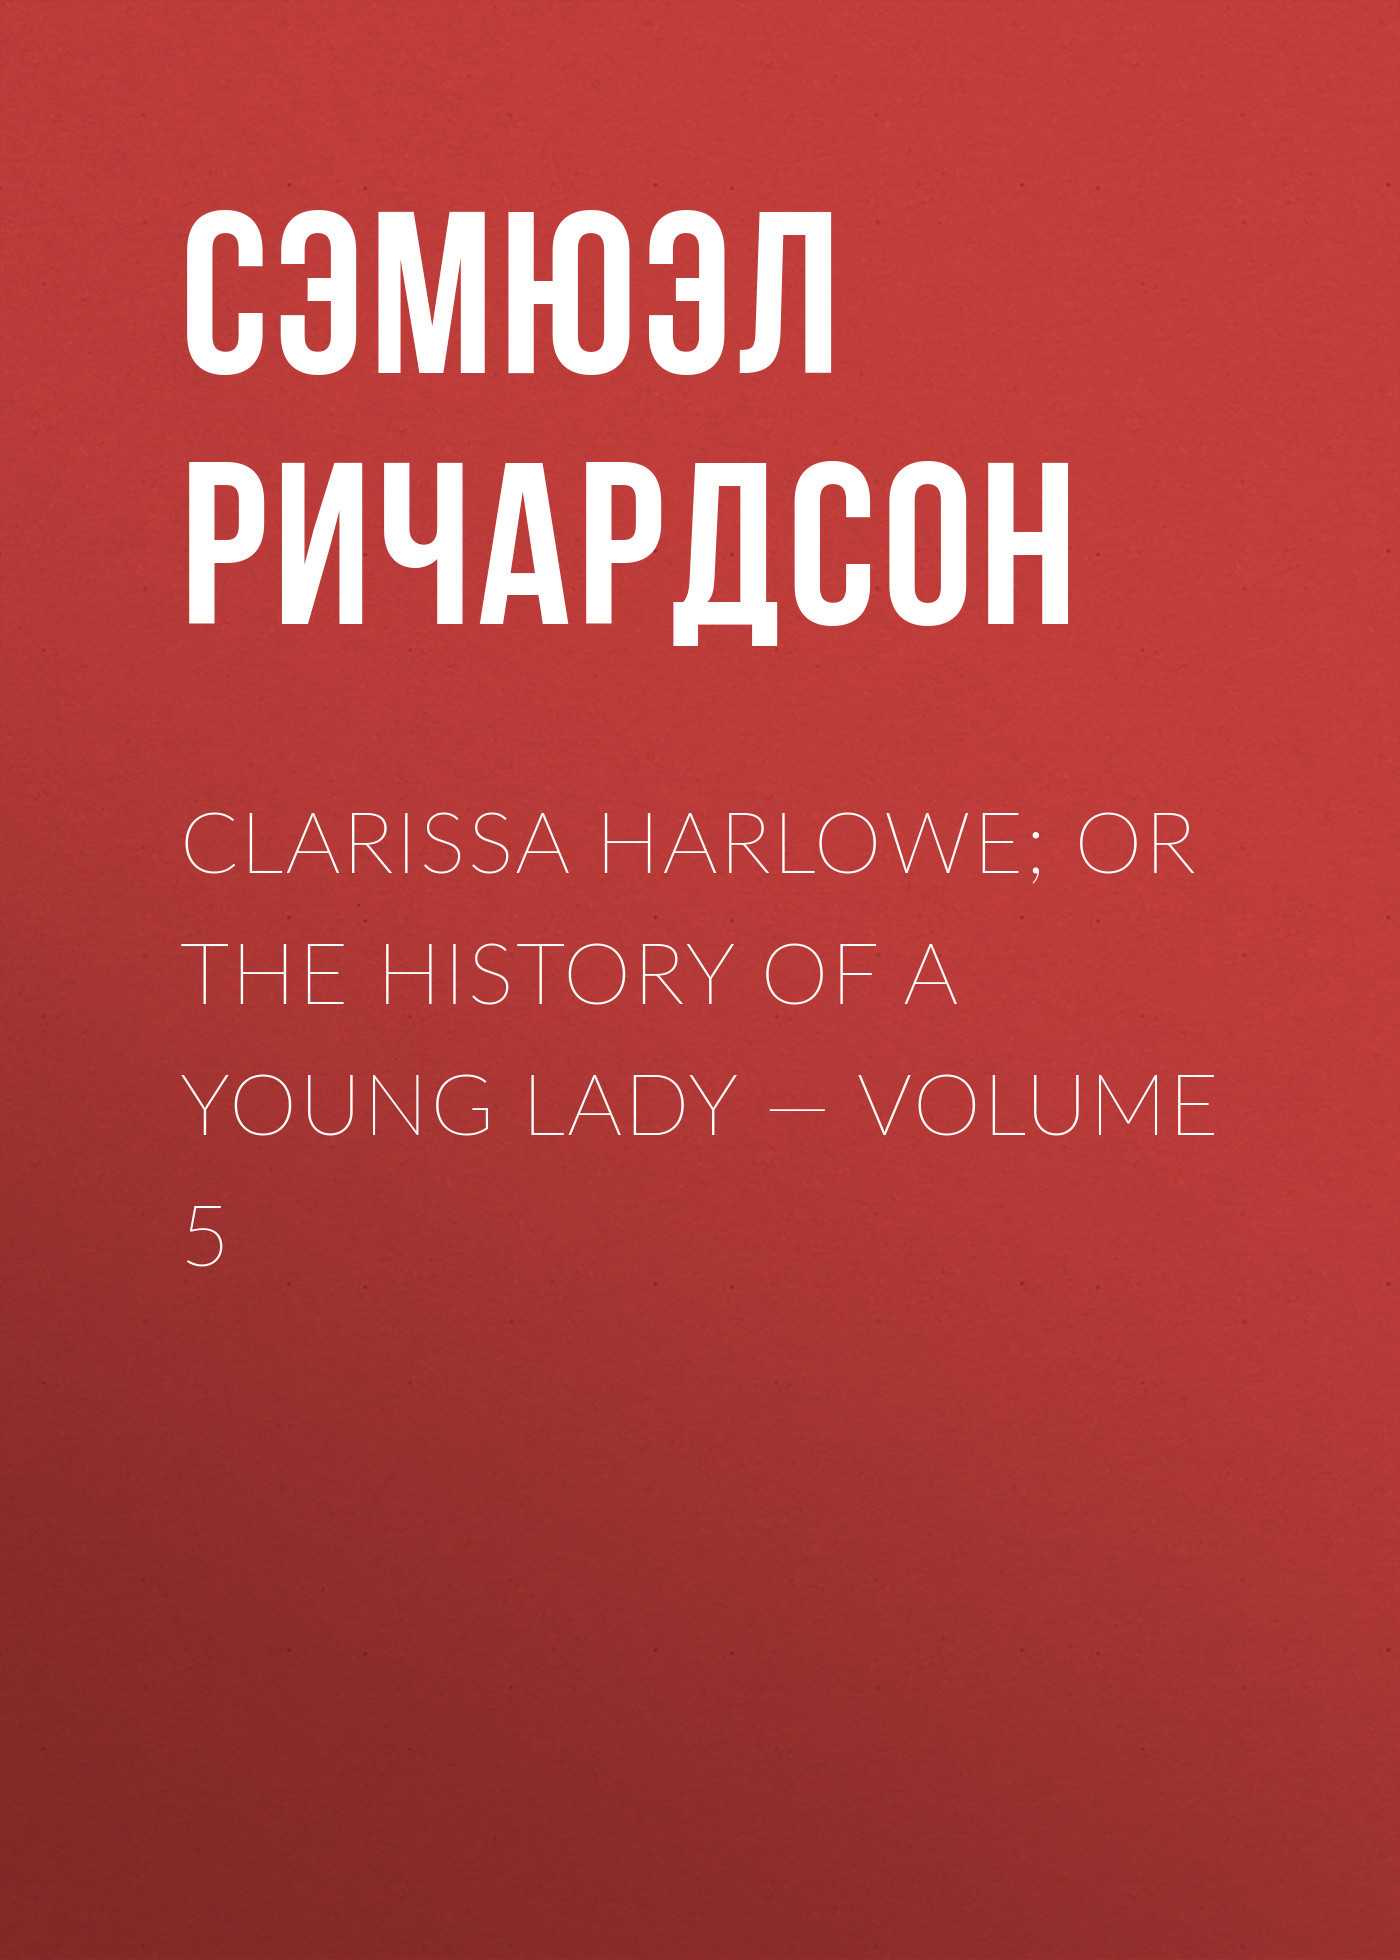 Clarissa Harlowe; or the history of a young lady — Volume 5